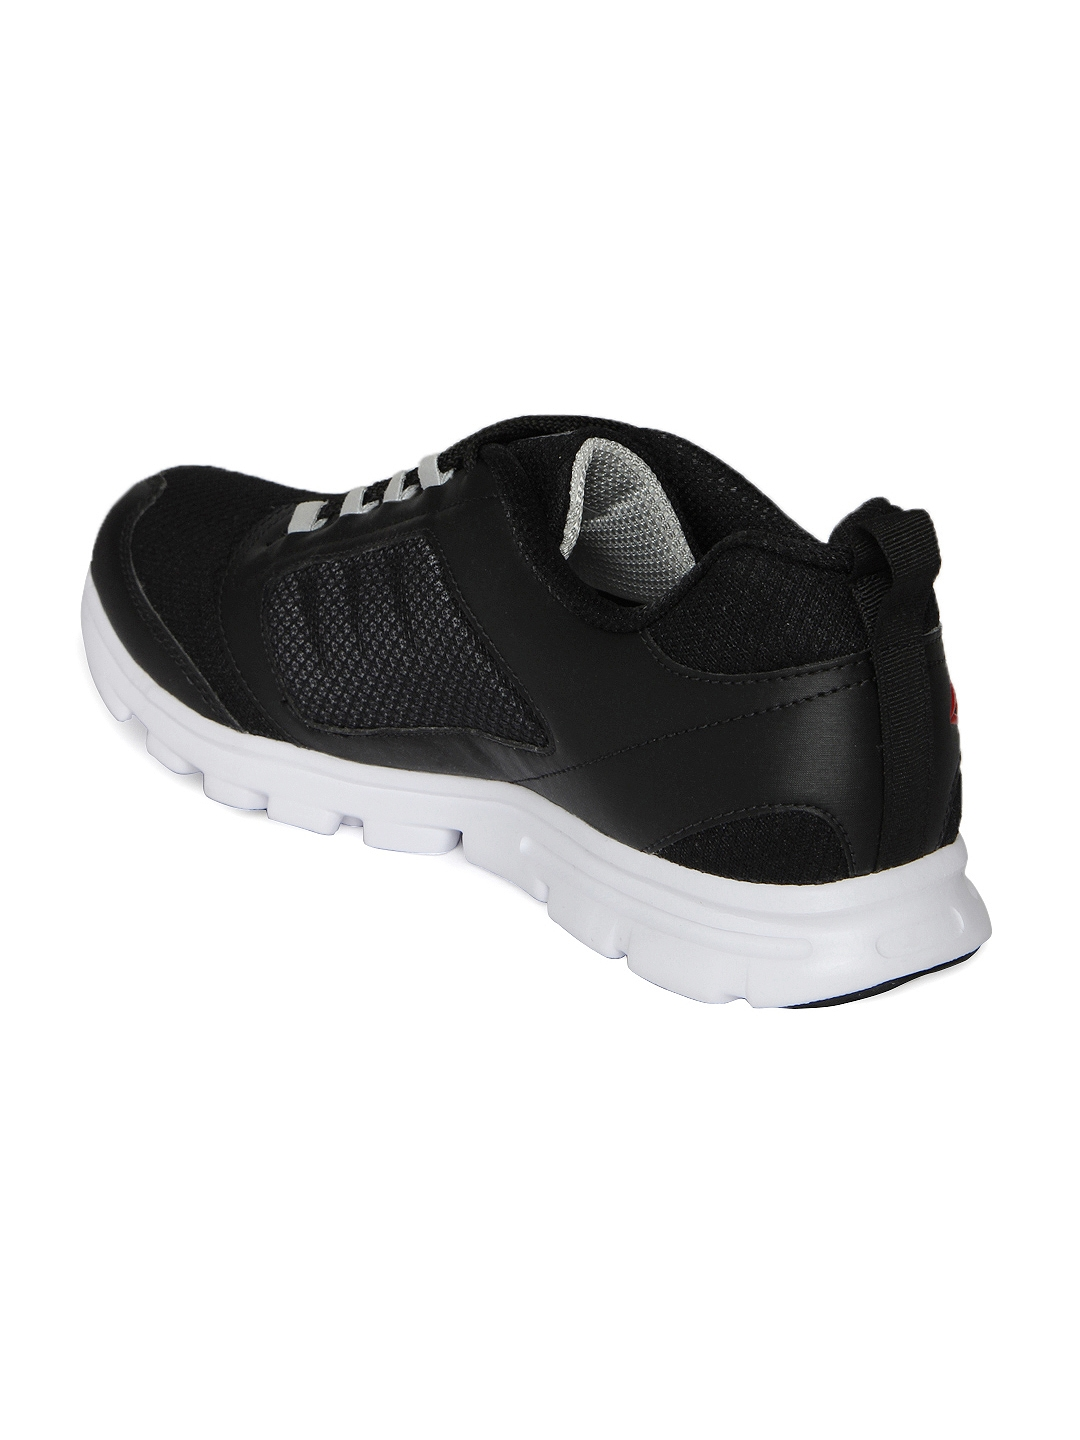 b3db4ad323b Buy Reebok Men Black Run Stormer Running Shoes - Sports Shoes for ...